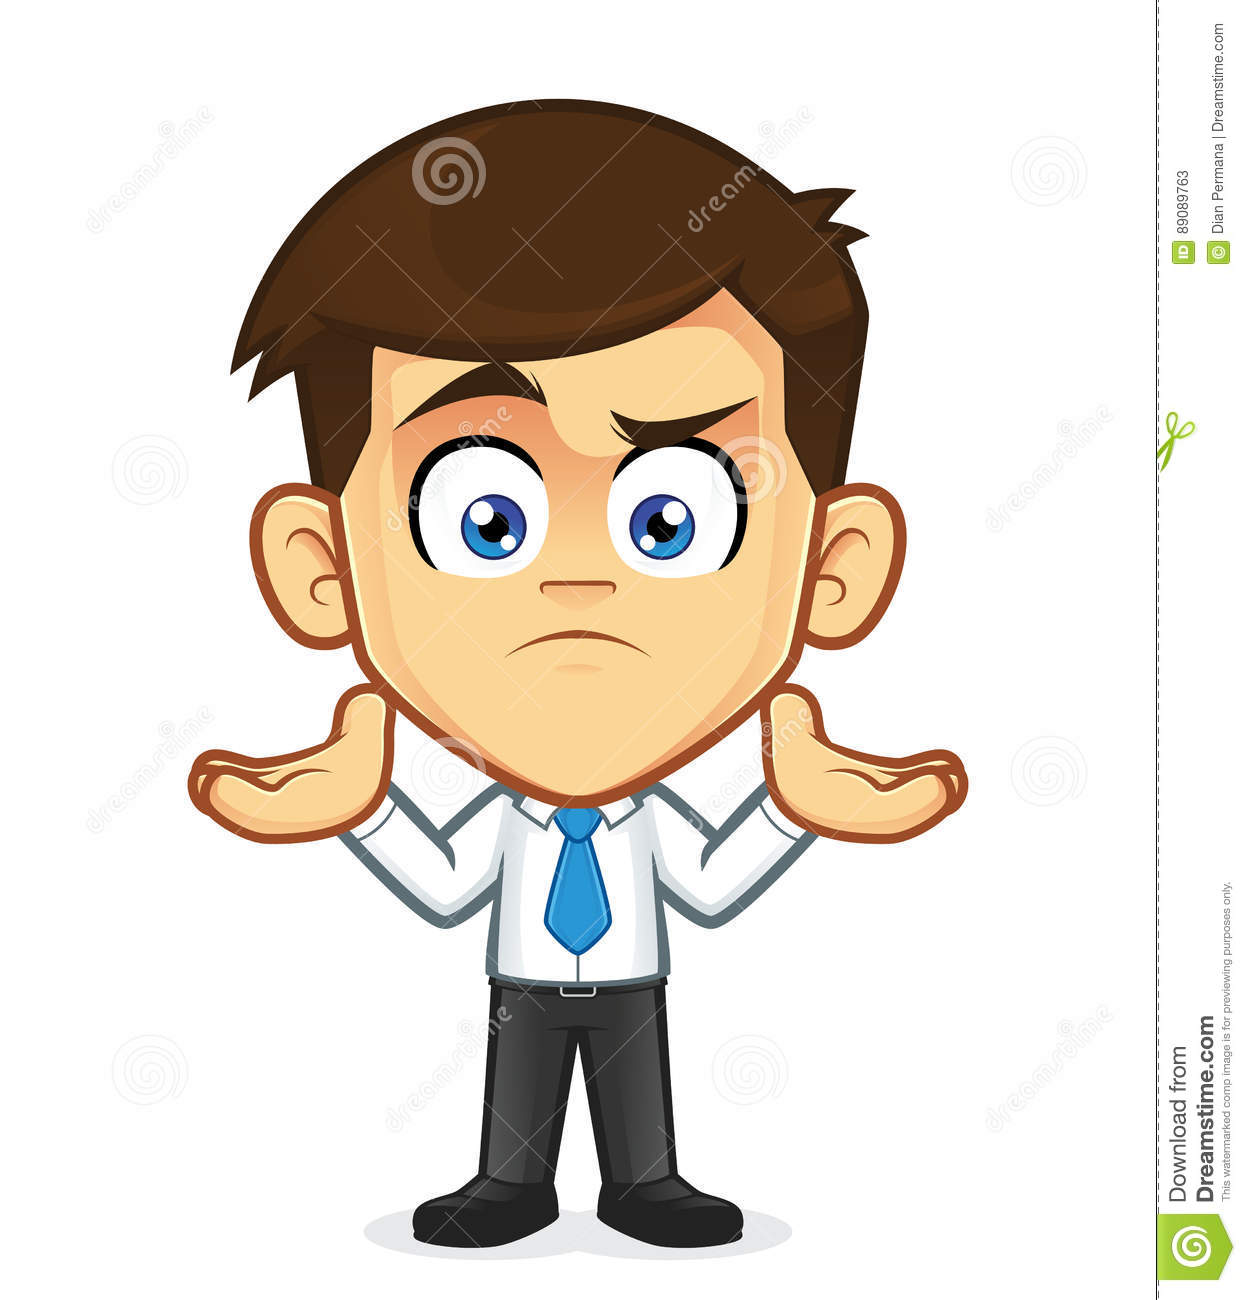 Cartoon Clipart - Confused Person Cartoon Png - free transparent png images  - pngaaa.com